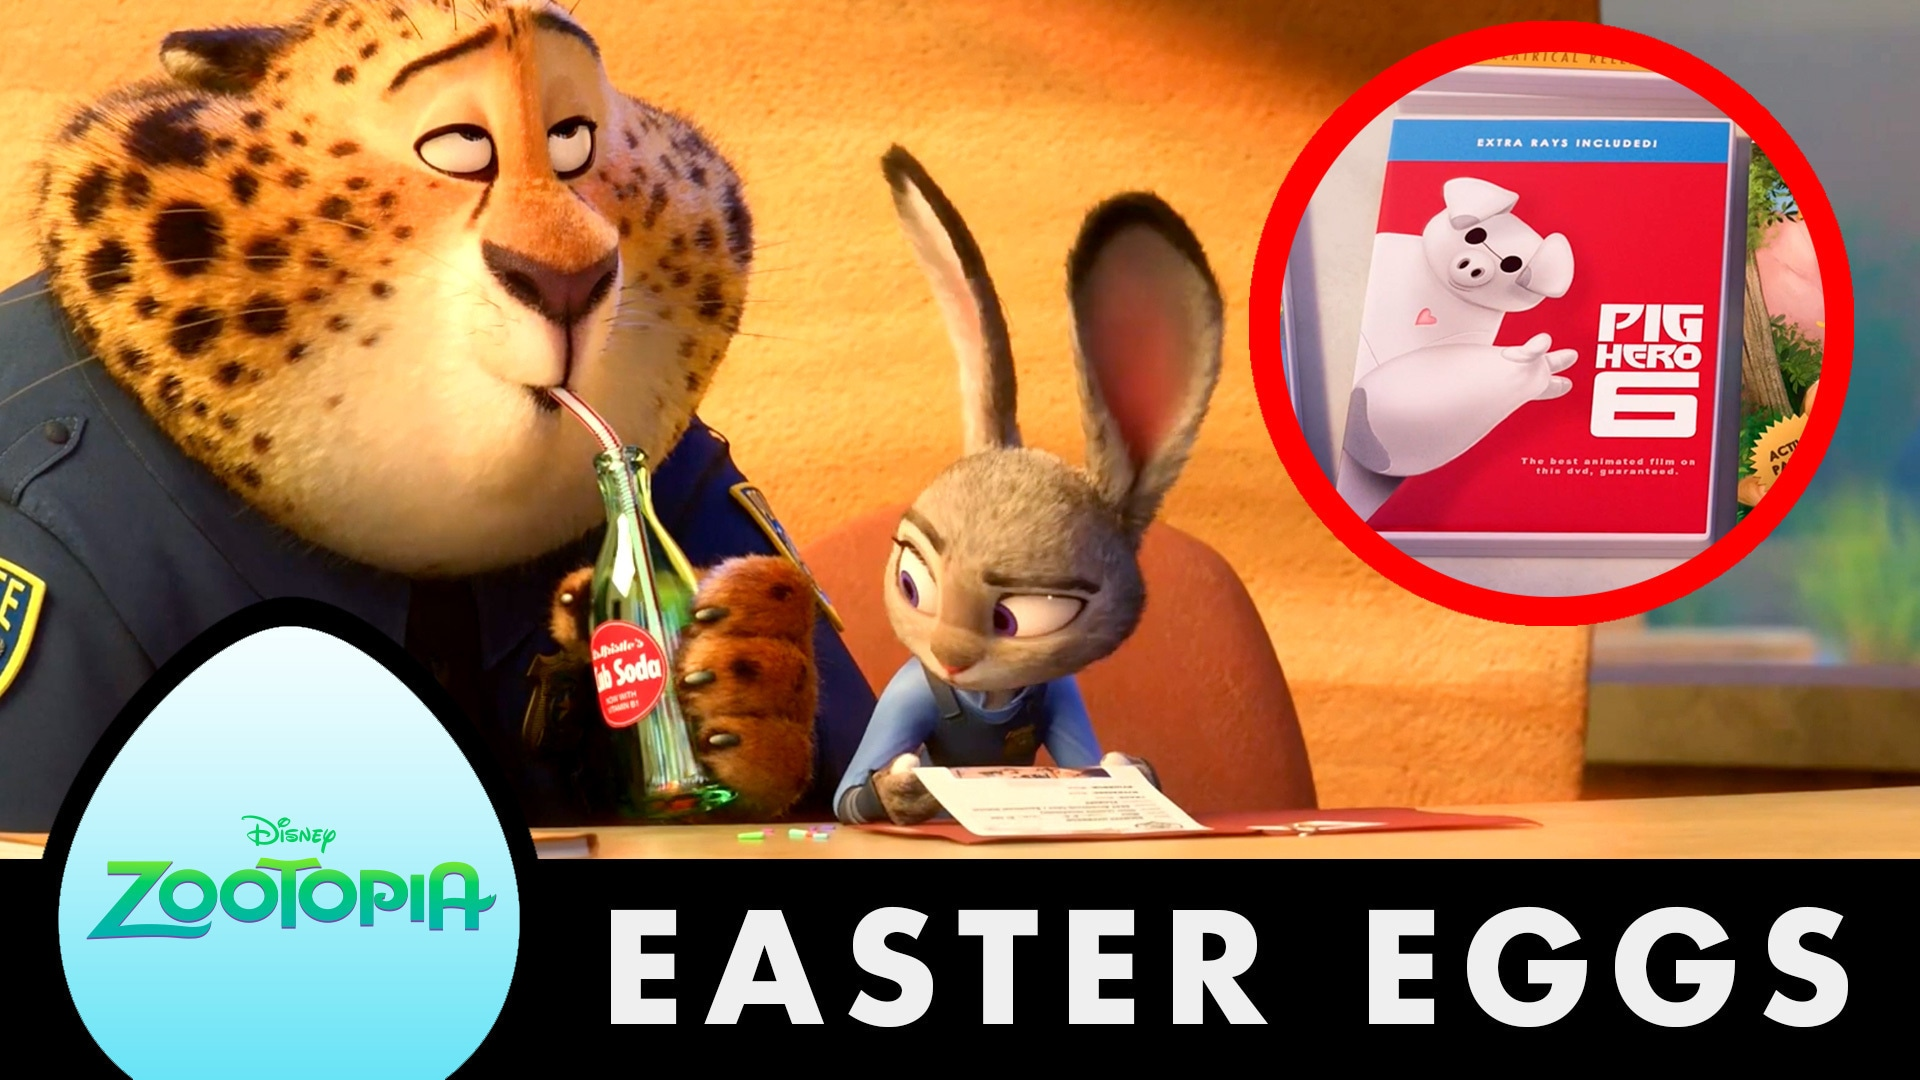 Zootopia | 10 Awesome Hidden Secrets and Easter Eggs